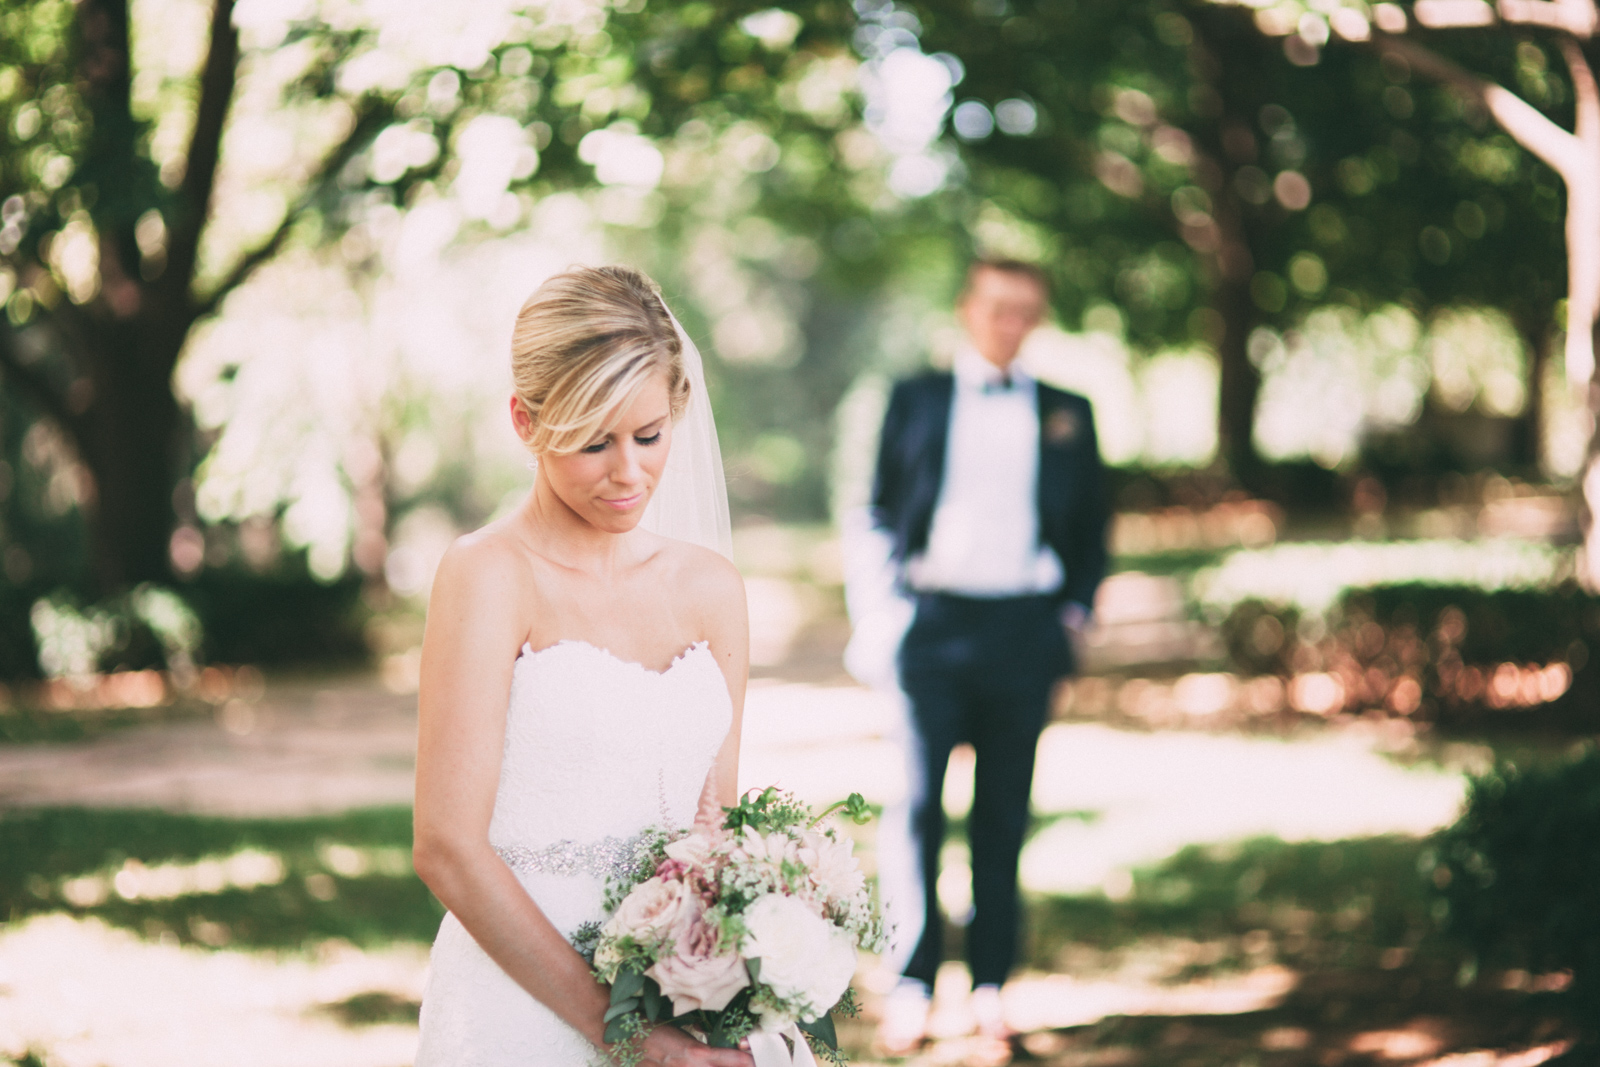 Bride and groom prepare for their wedding day